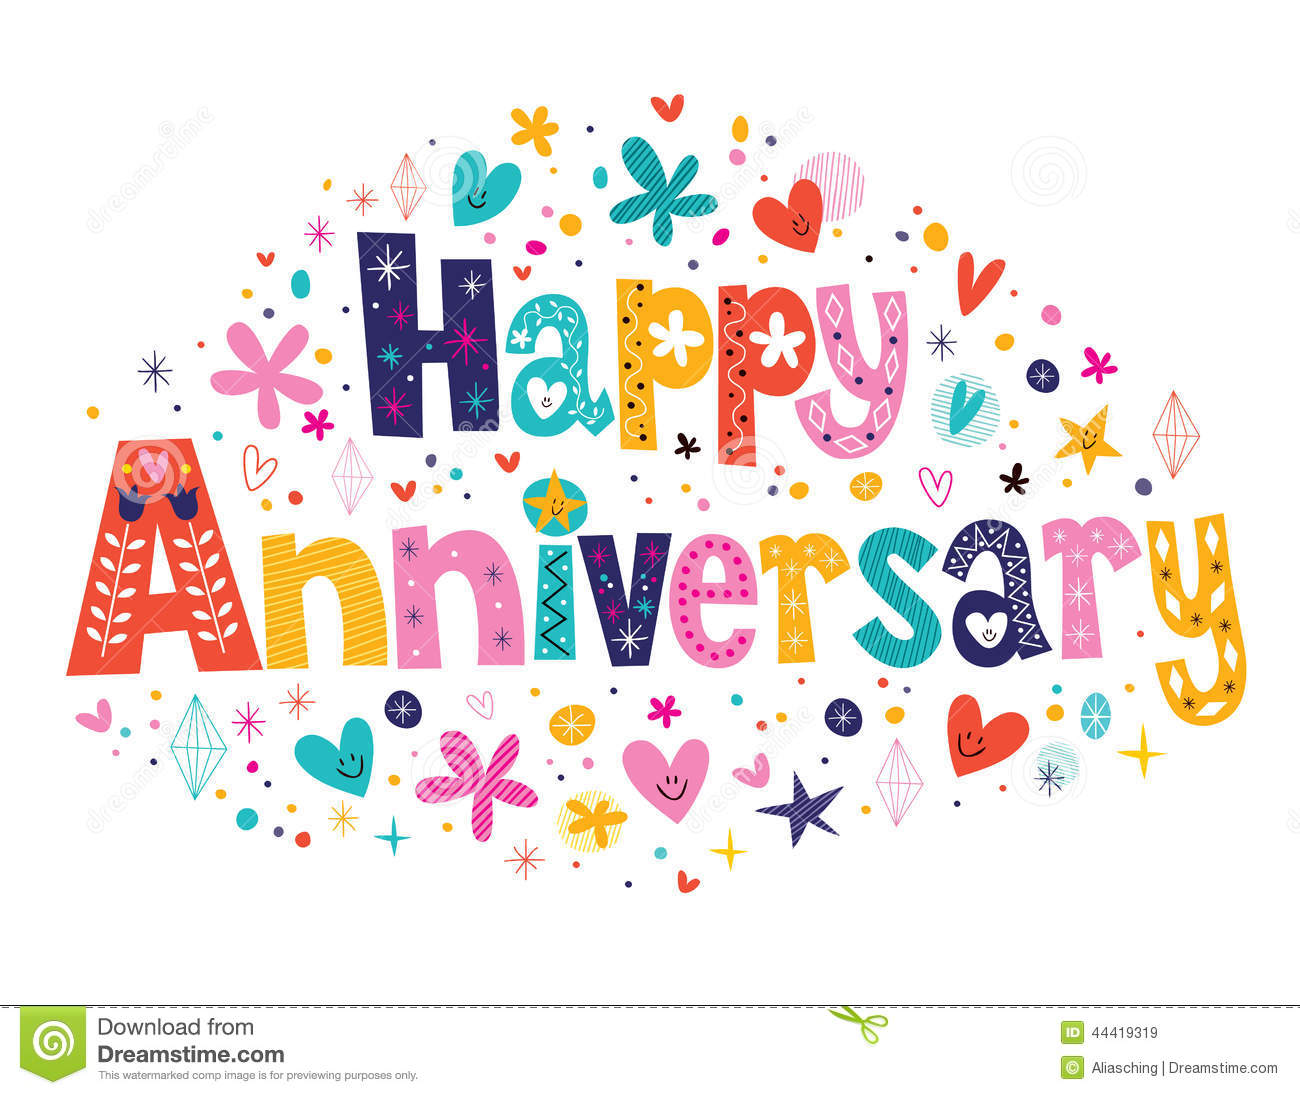 Happy Anniversary Clip Art Happy Anniversary Stock Vector - Image: 44419319